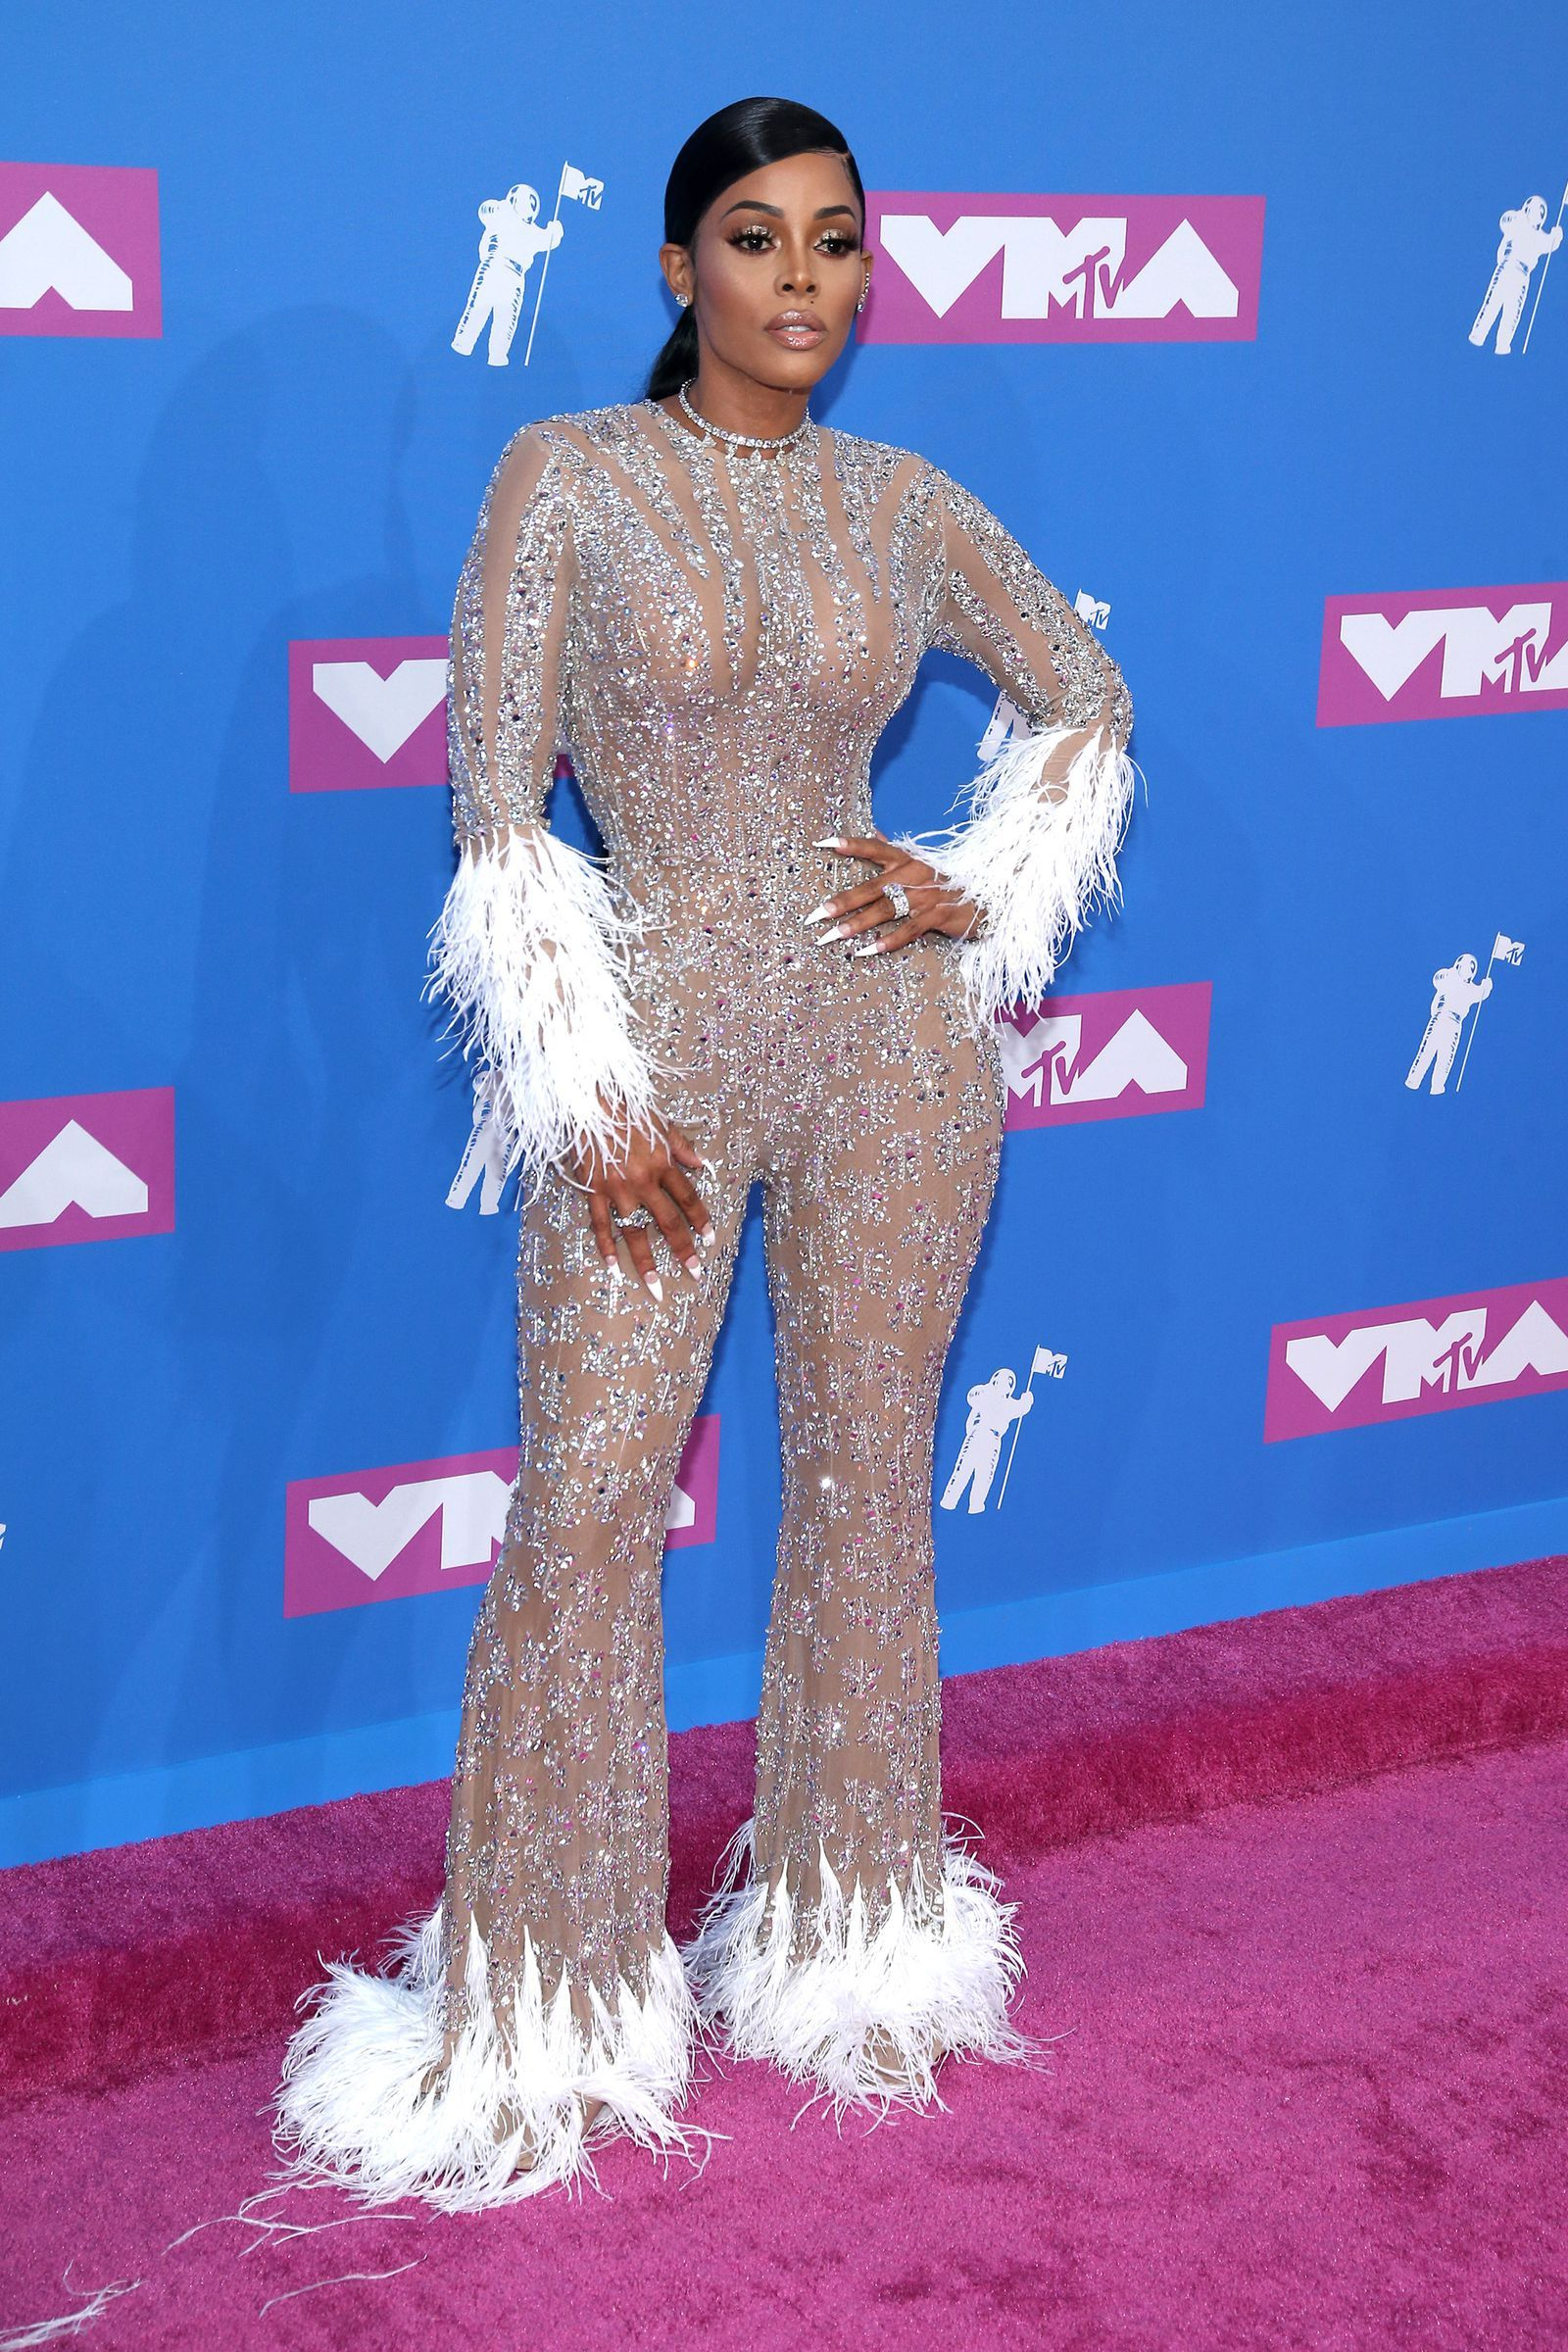 caacdac7a18 See All the Red Carpet Looks From the 2018 MTV VMAs- HarpersBAZAAR.com Urban